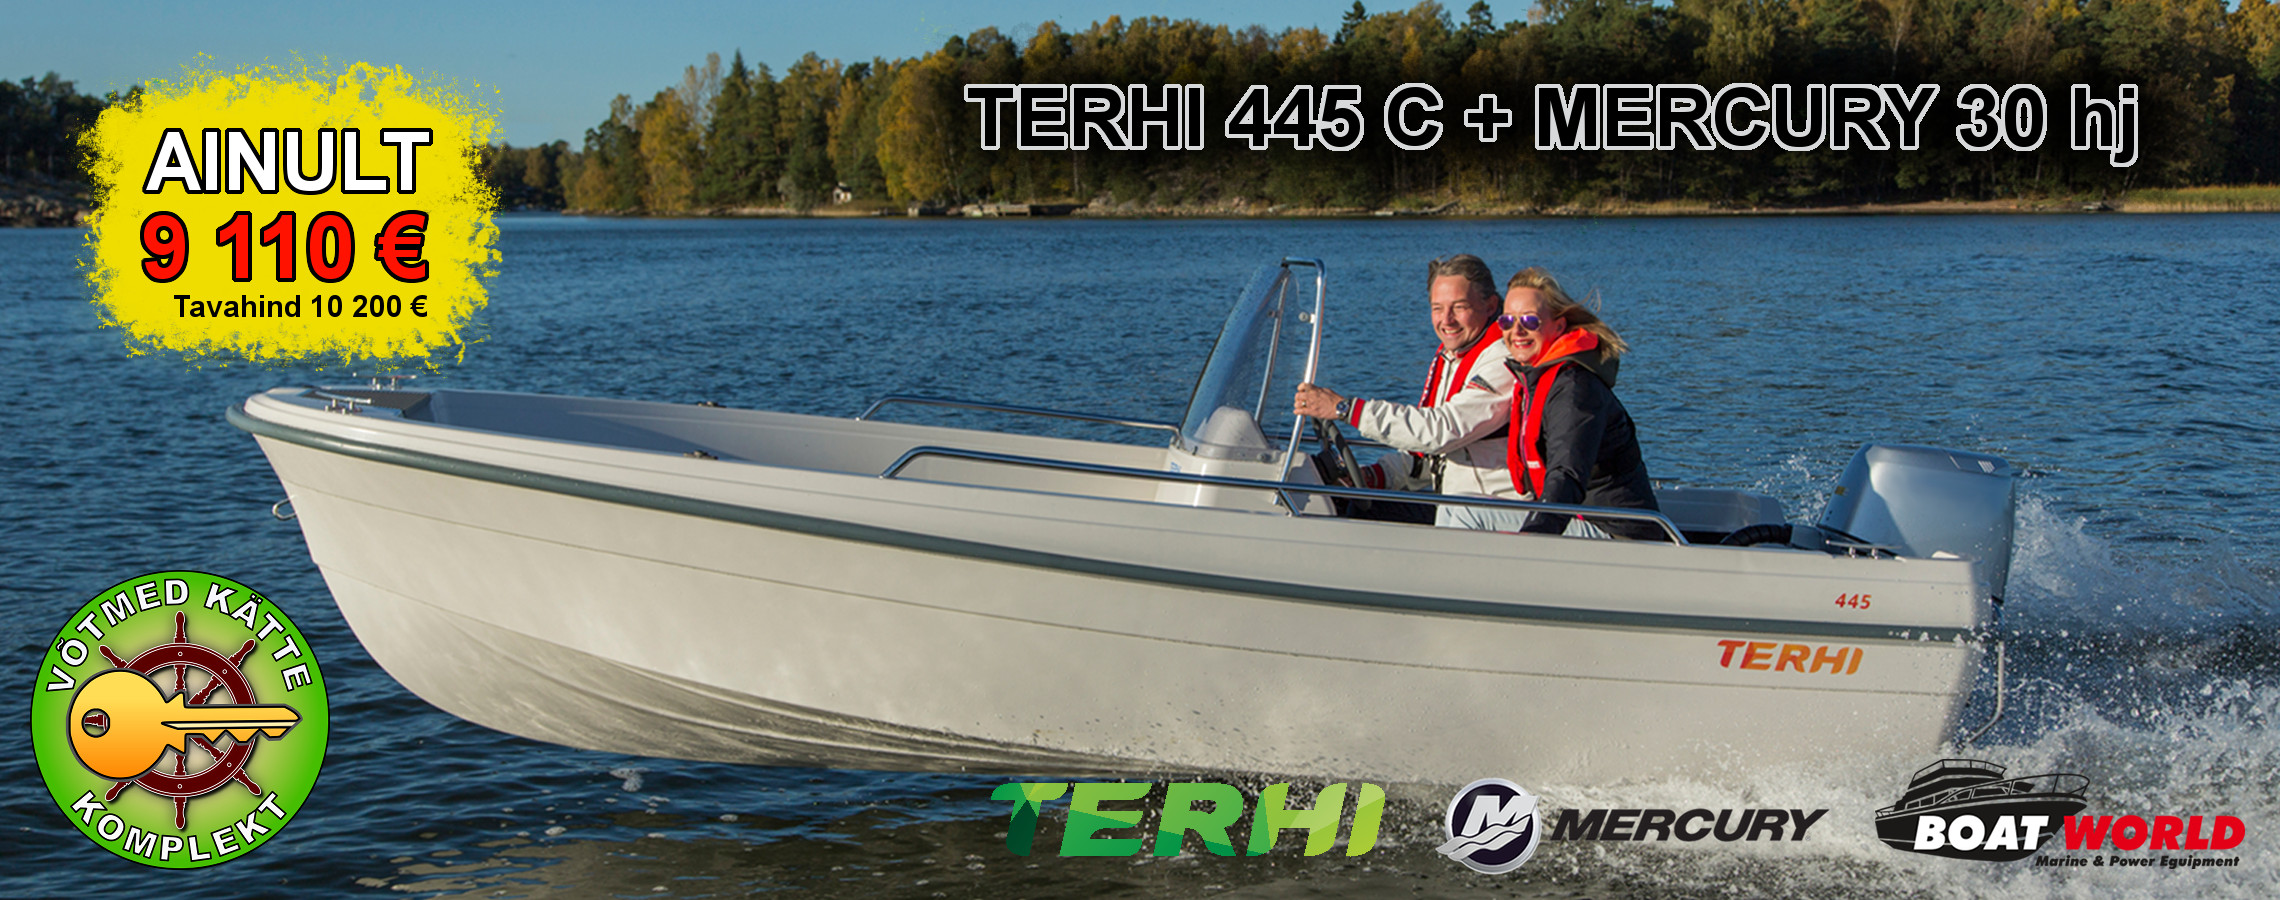 Terhi 445 C + Mercury F30ELPT EFI Background